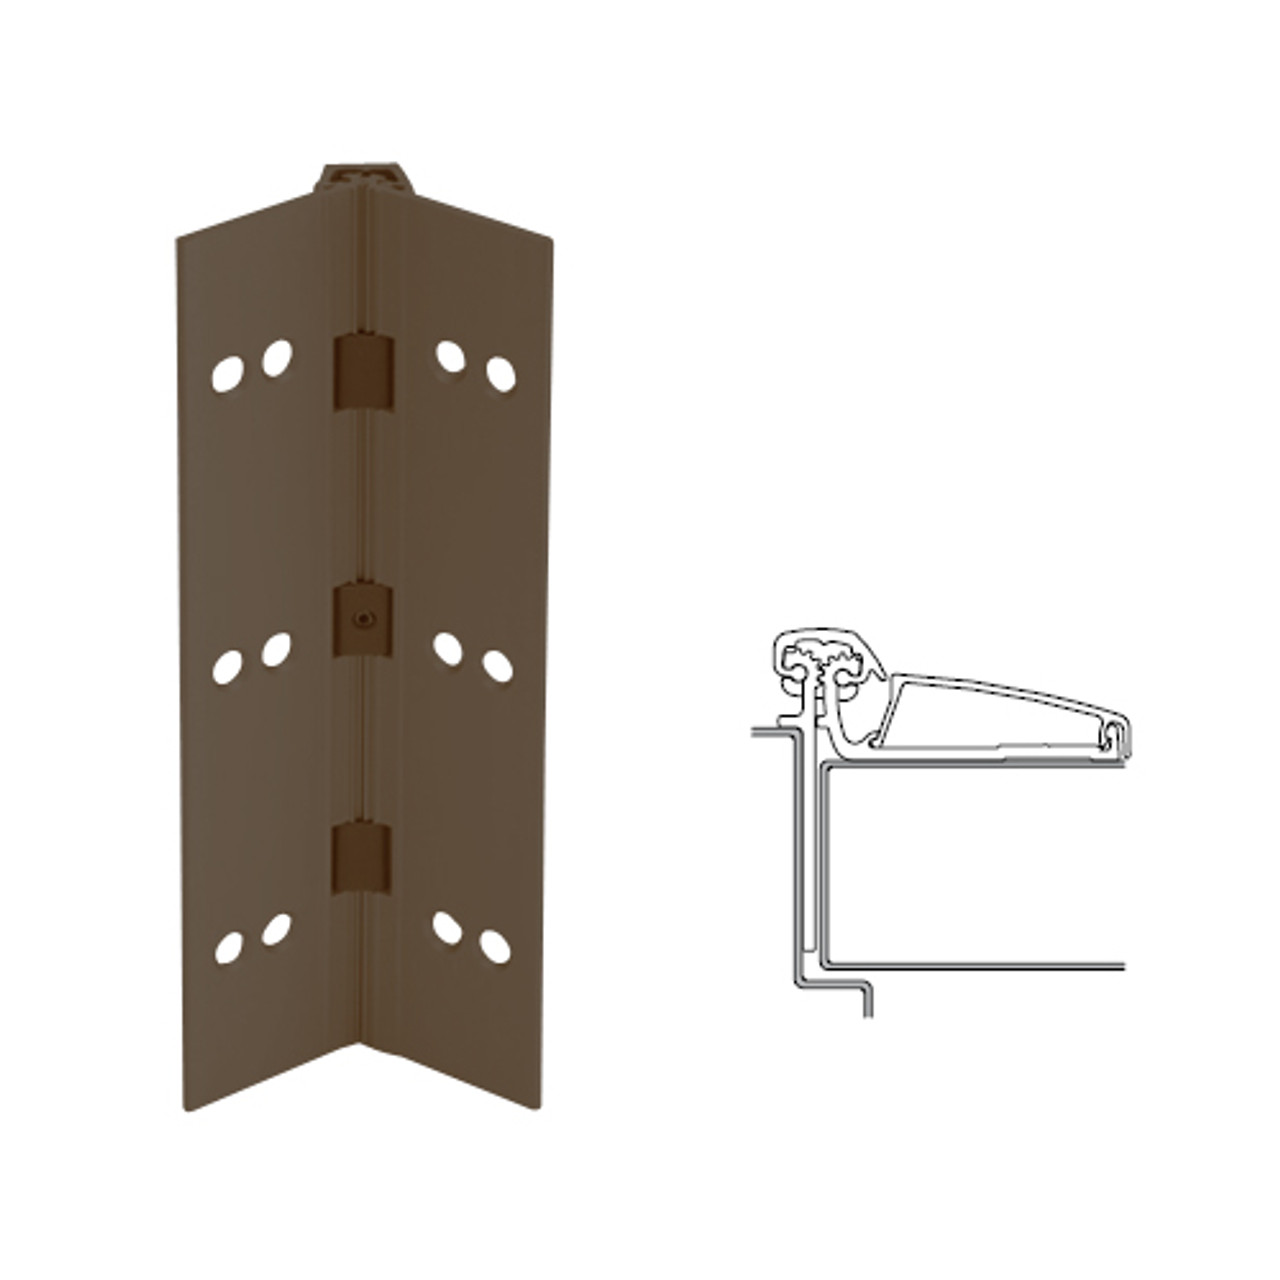 046XY-313AN-120-SECWDHM IVES Adjustable Half Surface Continuous Geared Hinges with Security Screws - Hex Pin Drive in Dark Bronze Anodized